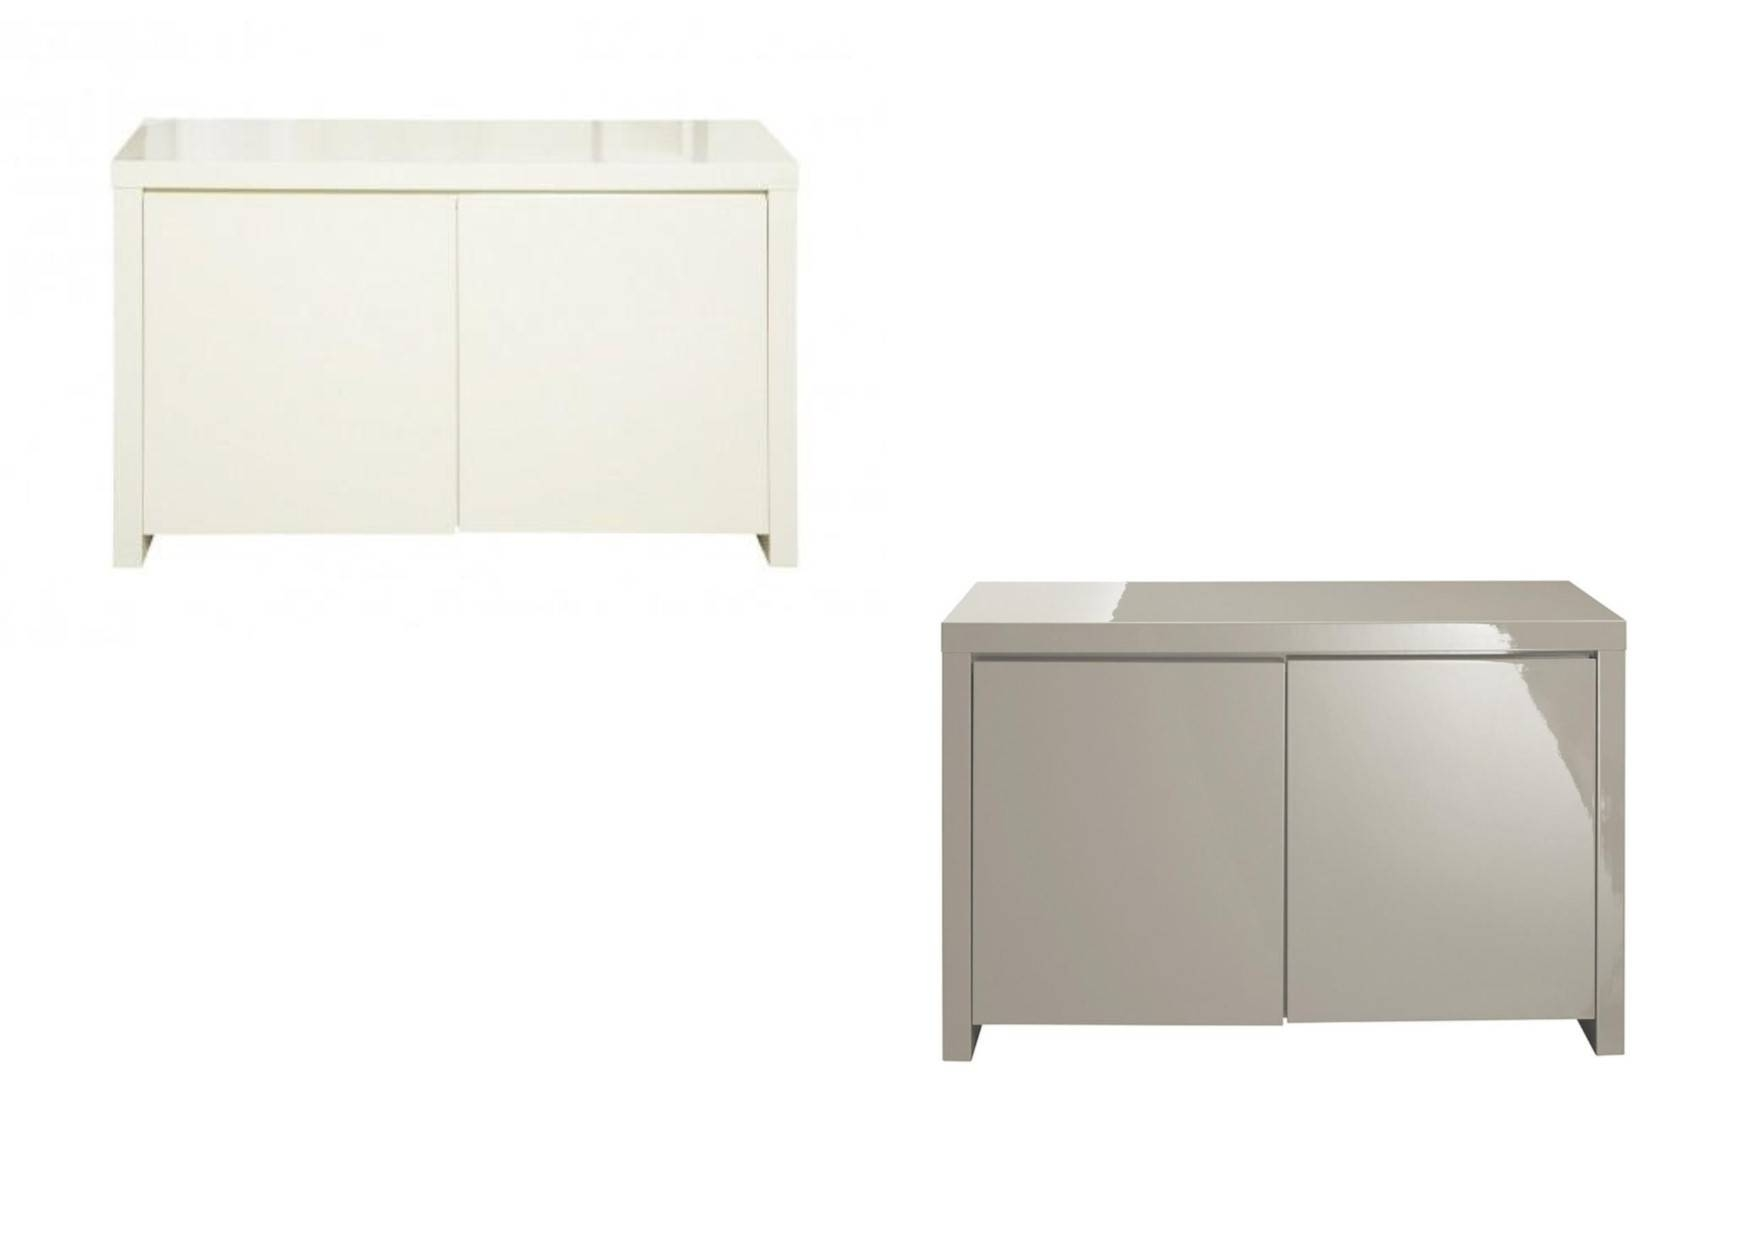 High Gloss Cream Or Stone 2 Door Sideboard For High Gloss Cream Sideboards (View 12 of 15)